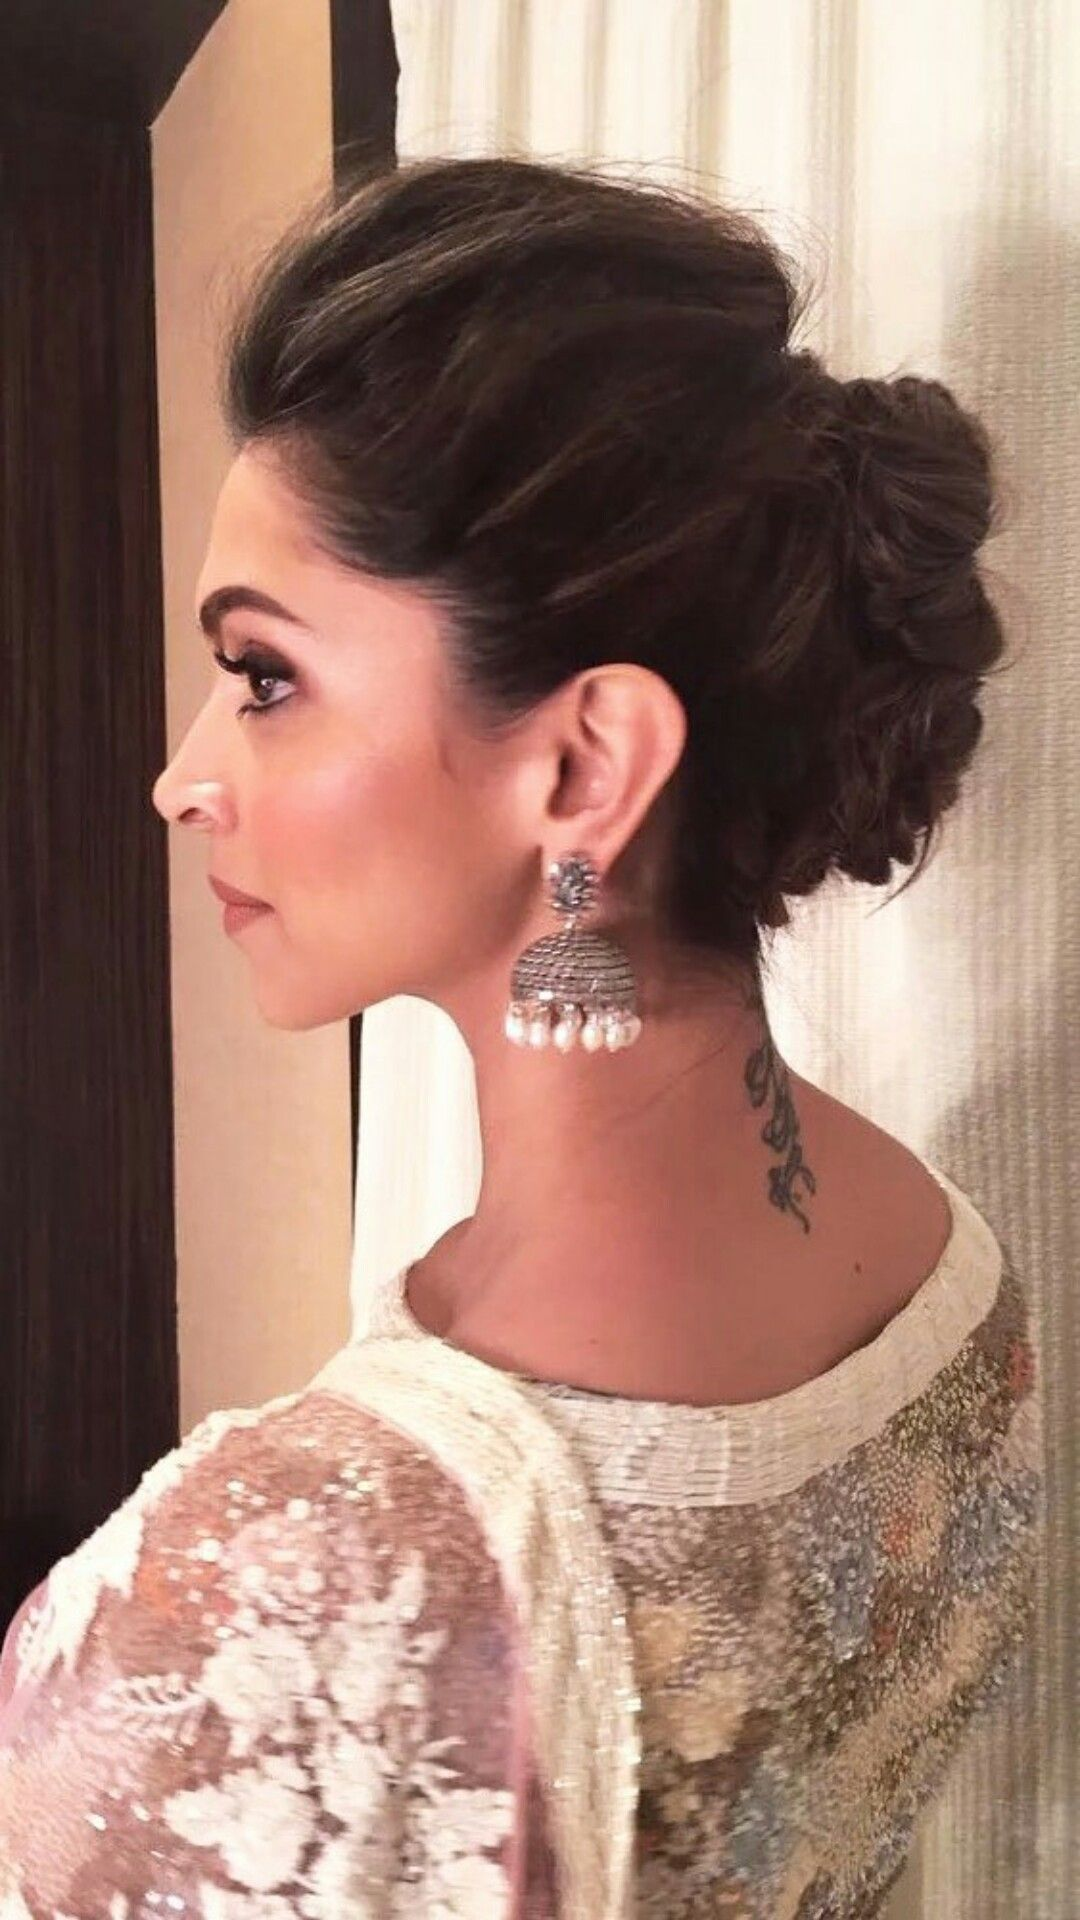 Pin by PerryPadukone on deepikaperfect✓ Pinterest